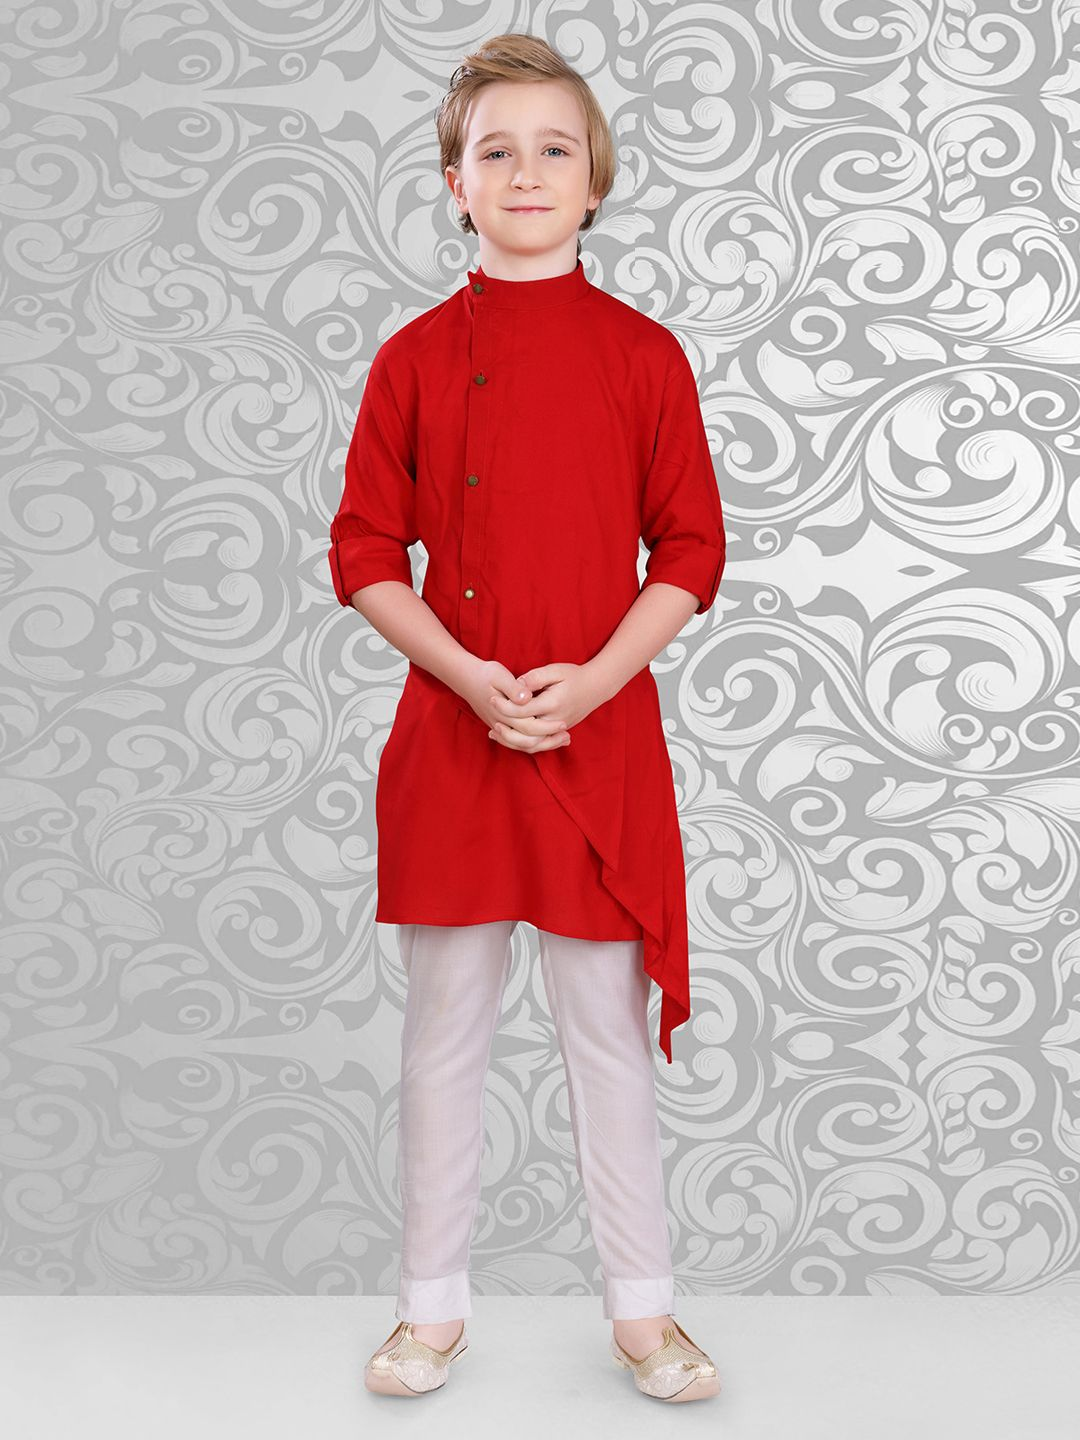 aa12b80b8fbe Red Solid Cotton Kurta Suit,Boys Pathani, Pathani Suit, Designer Kurta Suits  For Boys, Kids Kurta Suits, Bys Ethnic Collection for Pathani And Kurta  Suits